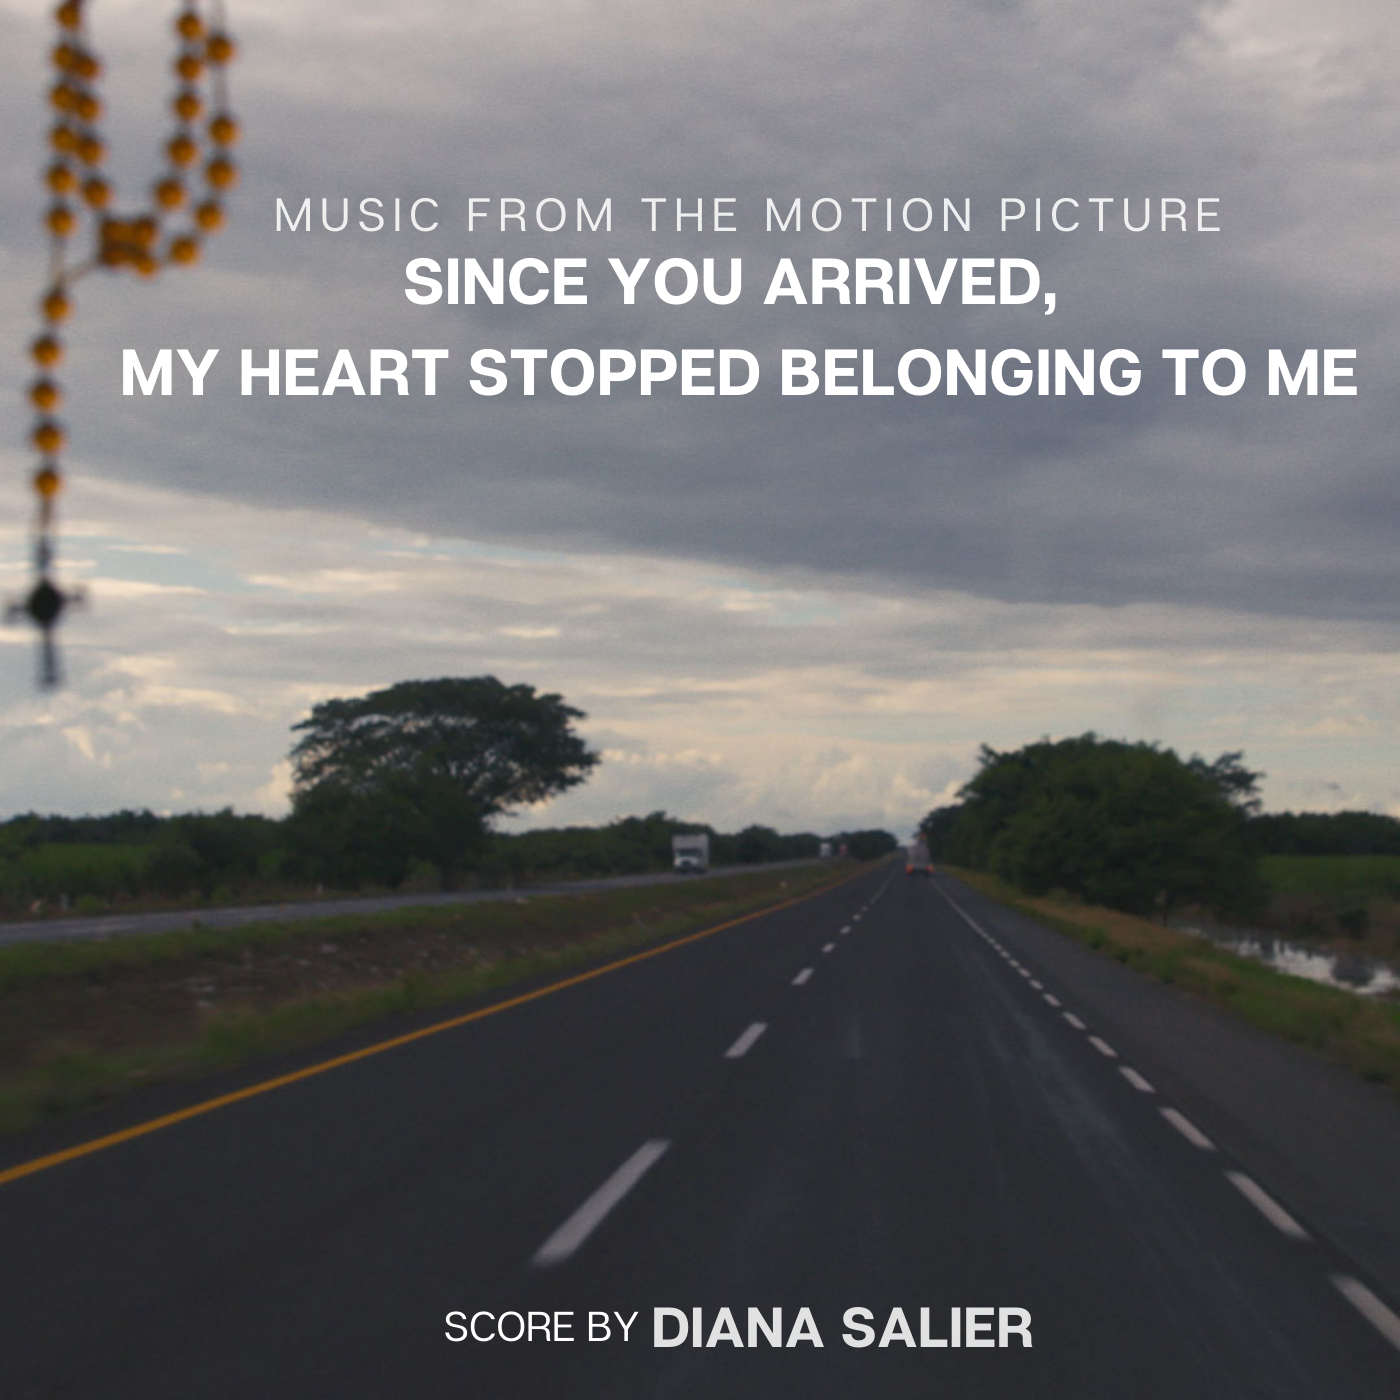 Since You Arrived, My Heart Stopped Belonging To Me